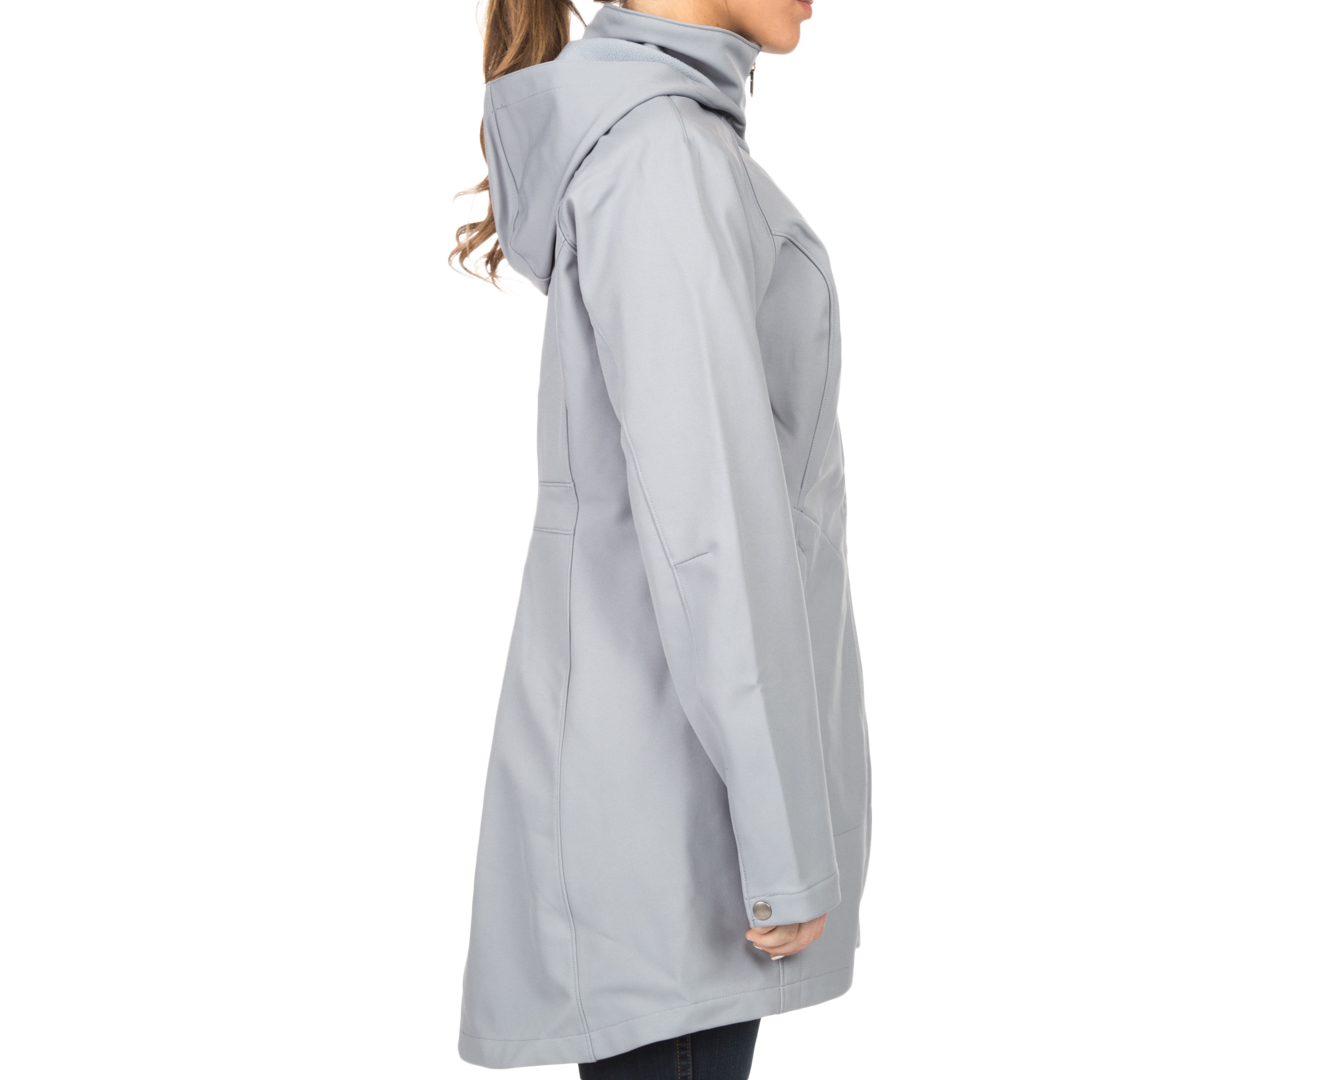 a619712adb5 Columbia Women s Take To The Streets II Long Softshell Jacket - Grey ...